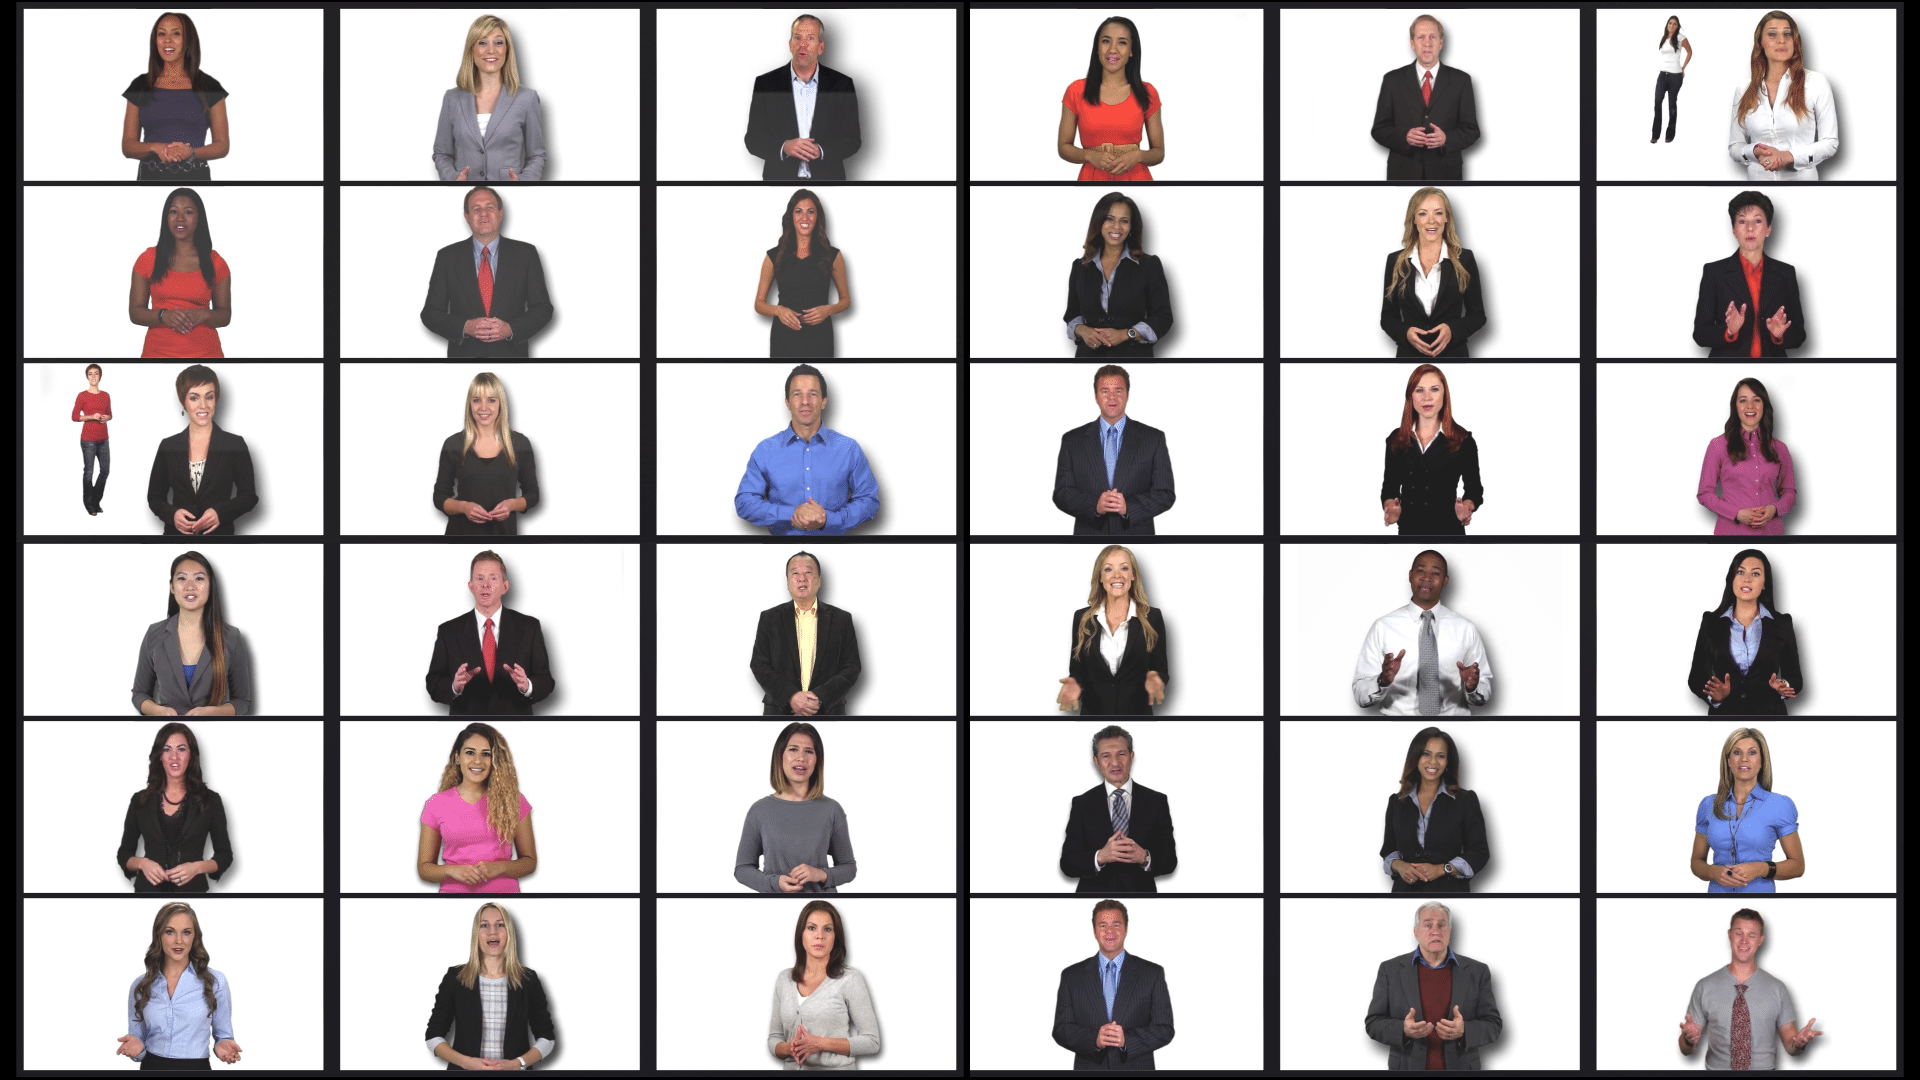 Wall of Video Video Spokespeople-Here are just a few of the Website Spokesperson we have used in our videos